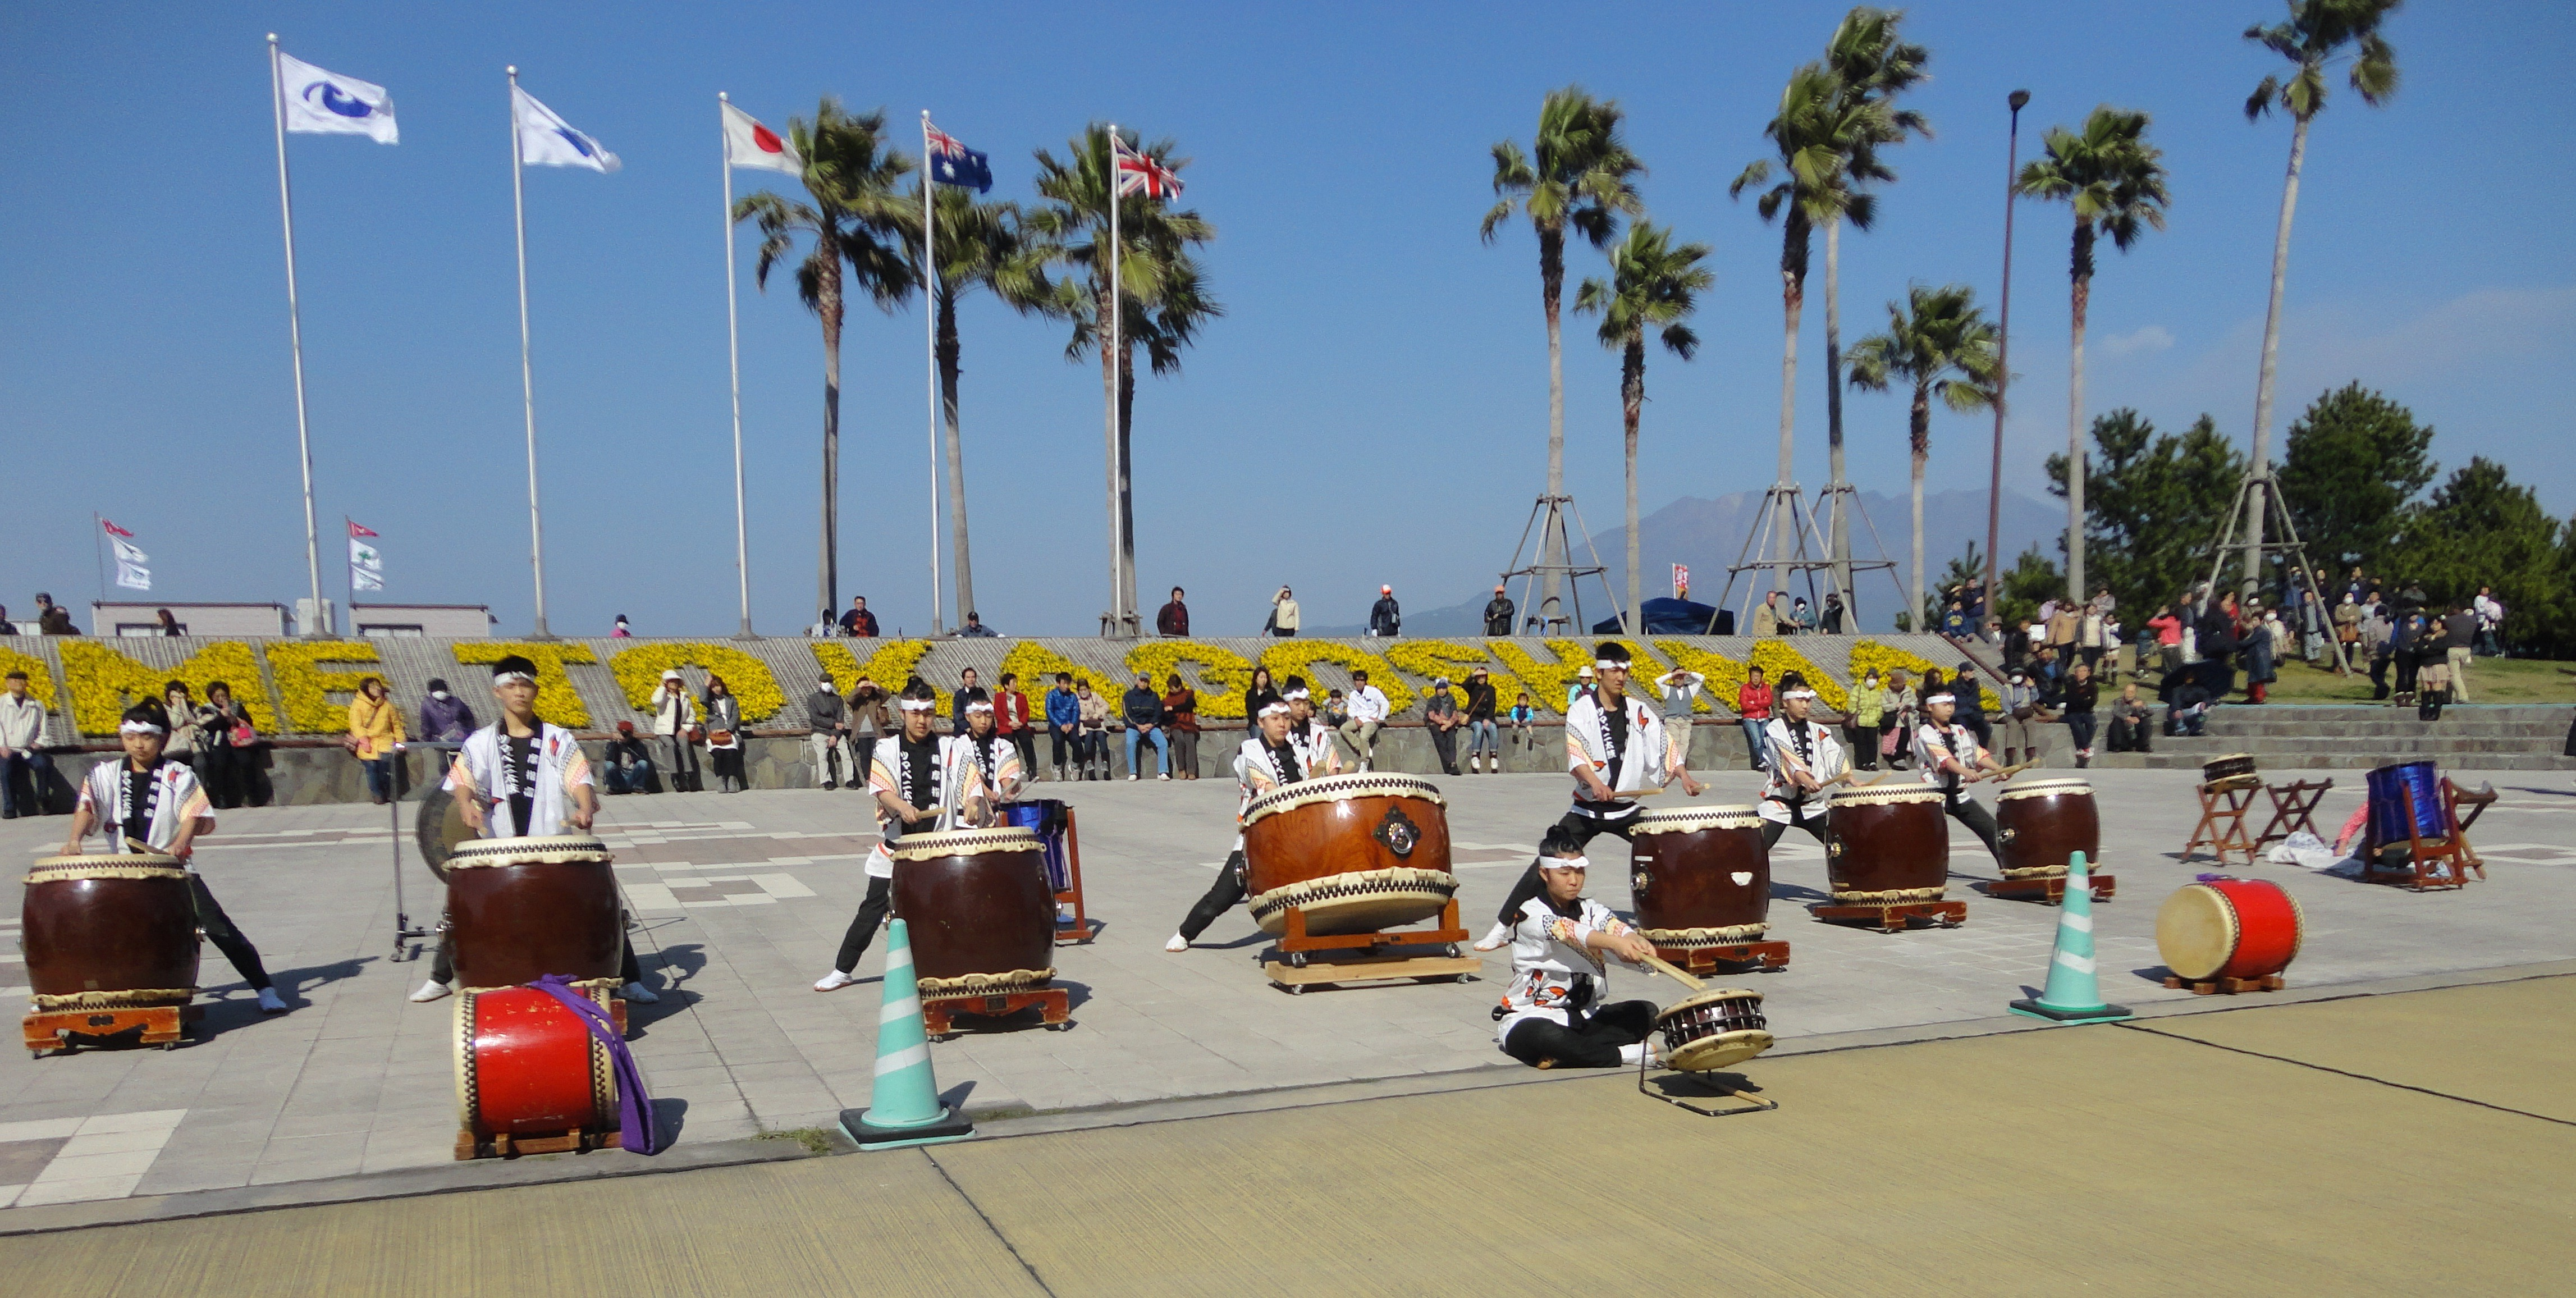 Melisa Topic How To Build A Boat Dock Using Drums - Kagoshima band playing drums